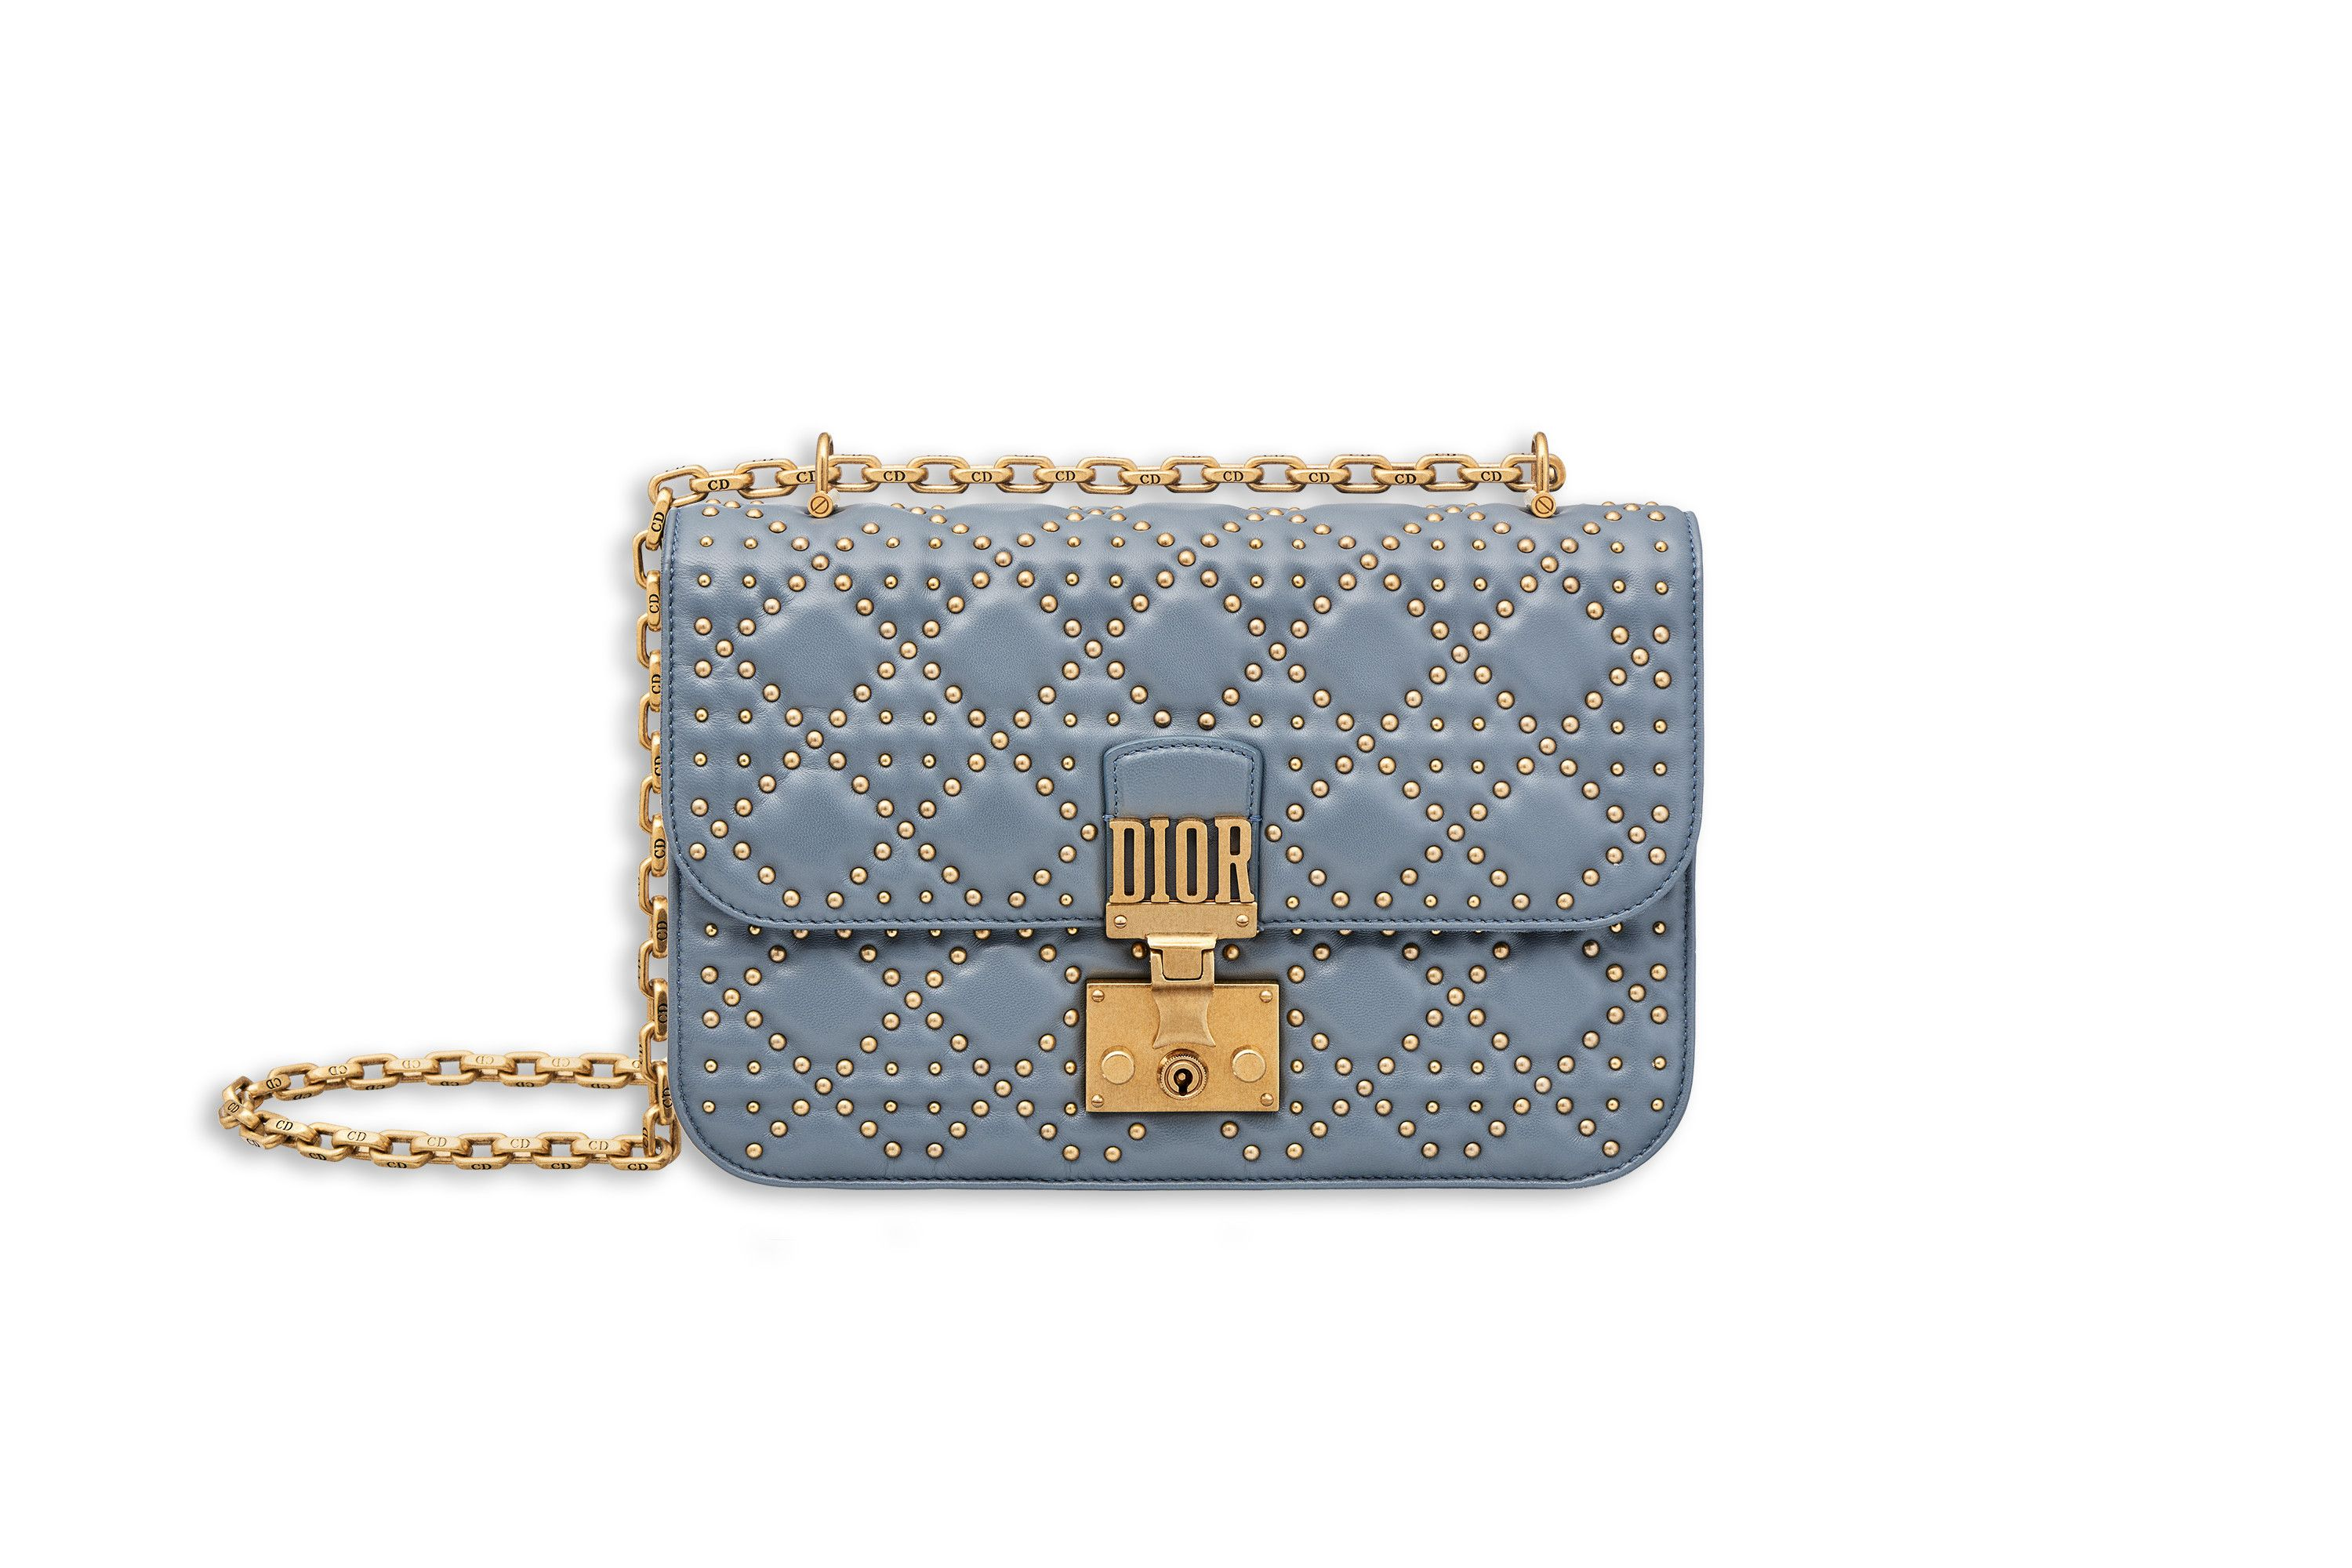 dd4d8afbe371 Dioraddict flap bag in blue studded lambskin - Dior